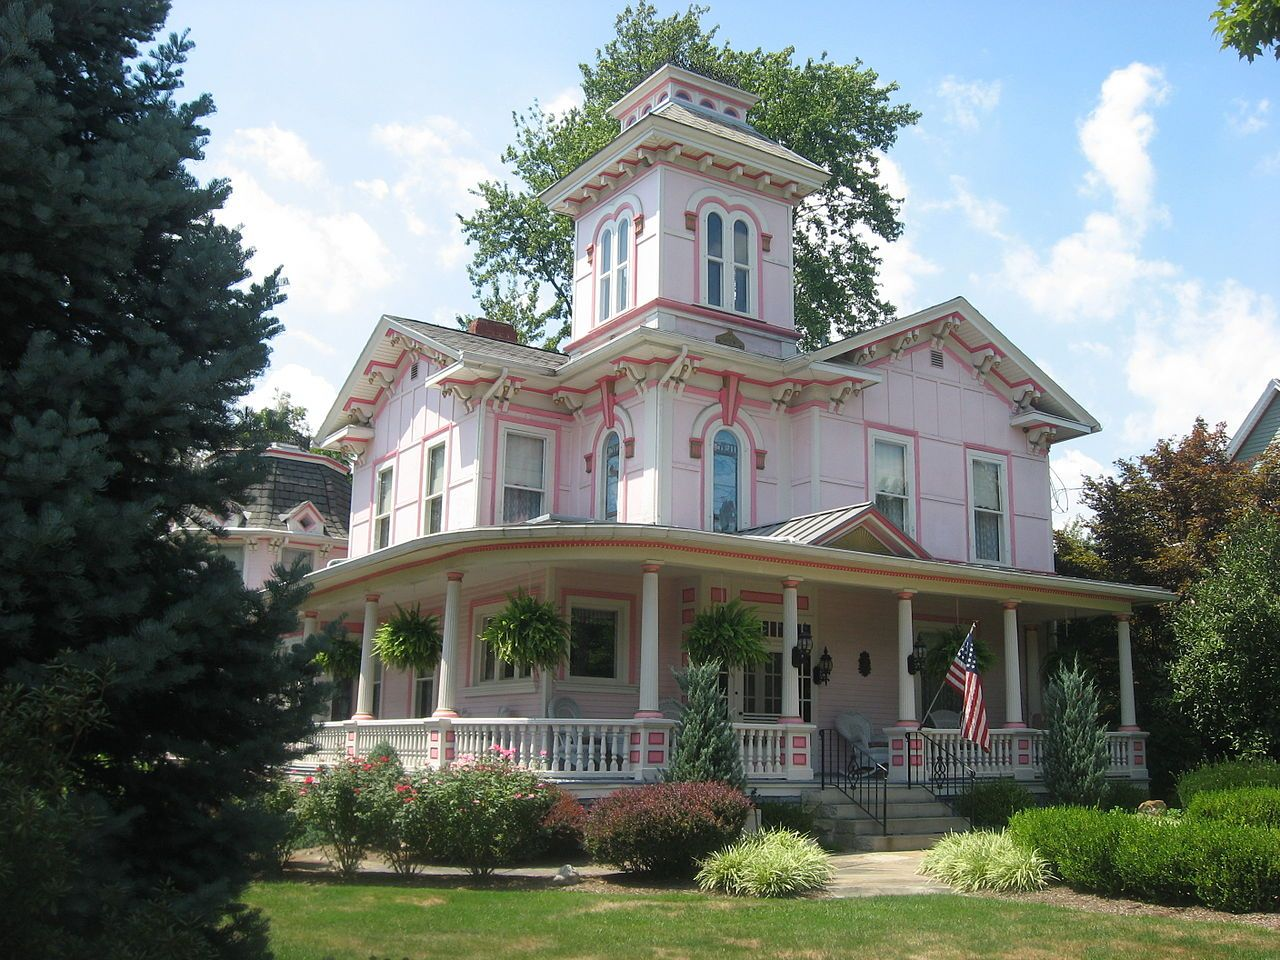 liggett freedlander house in wayne county ohio places across the